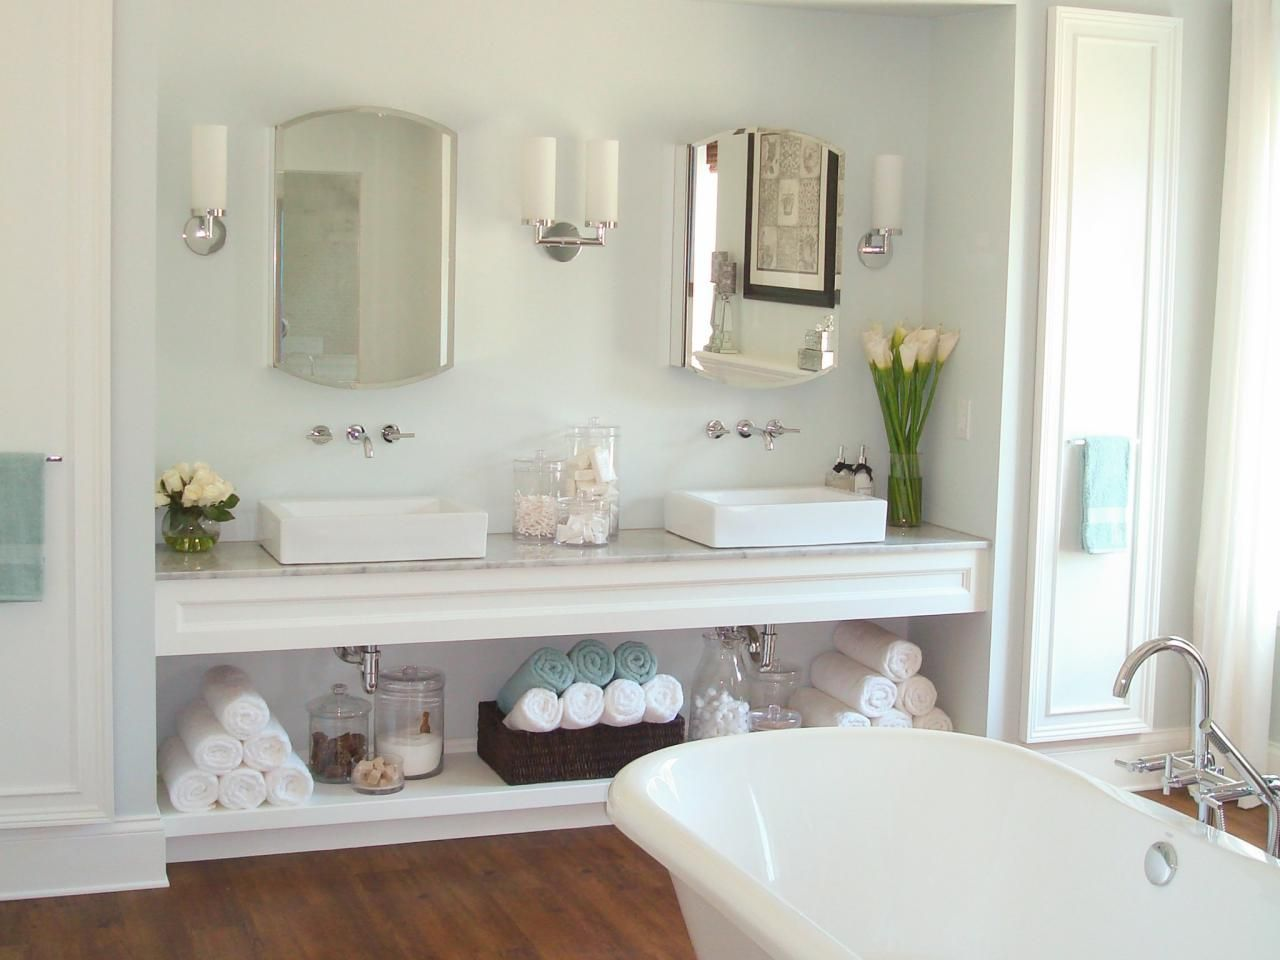 Bathroom Vanity Options vanity organizer | open shelving, towels and vanities